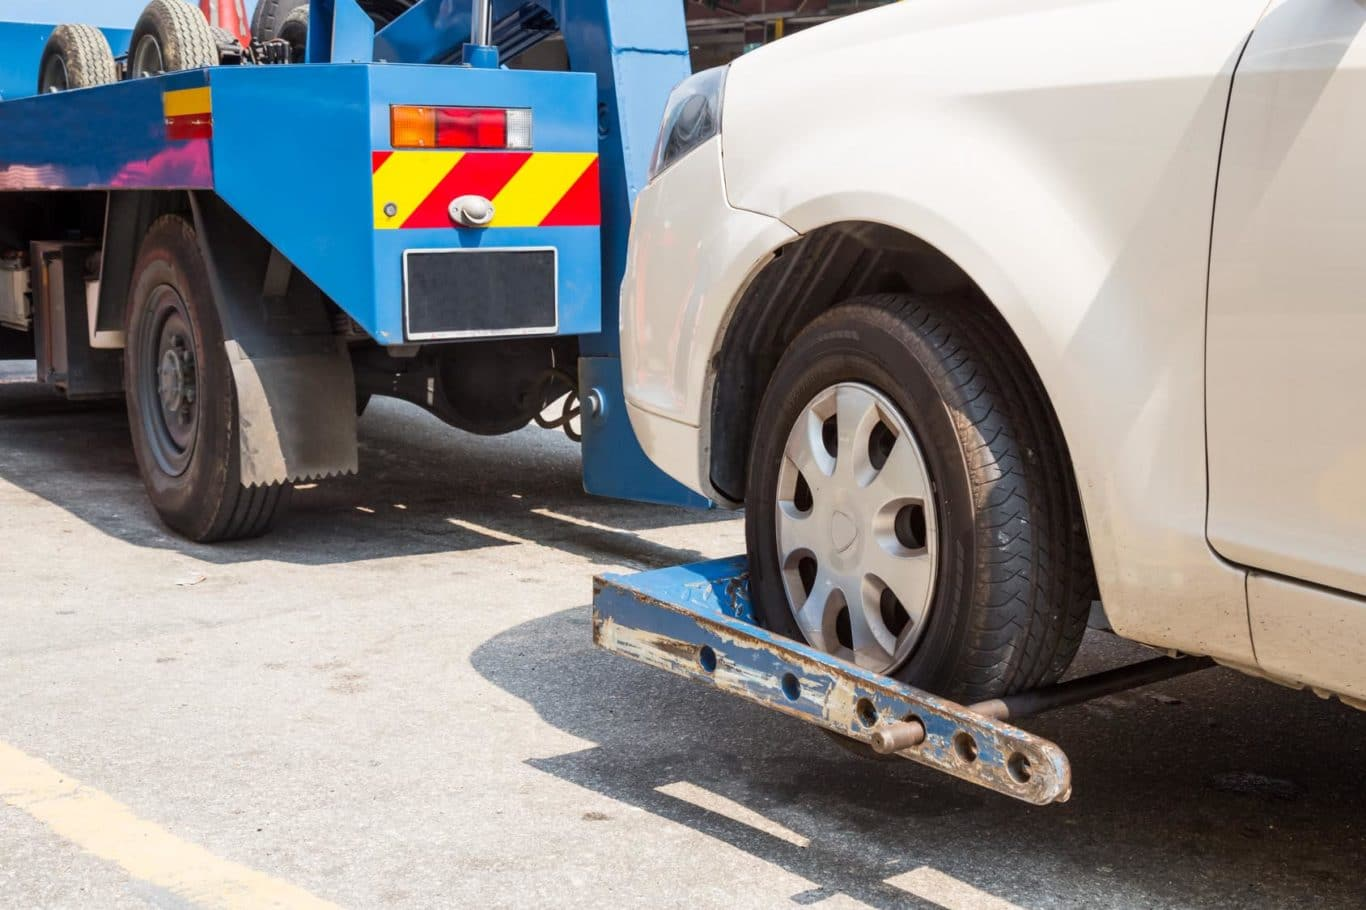 Balbriggan expert Towing And Recovery Dublin services